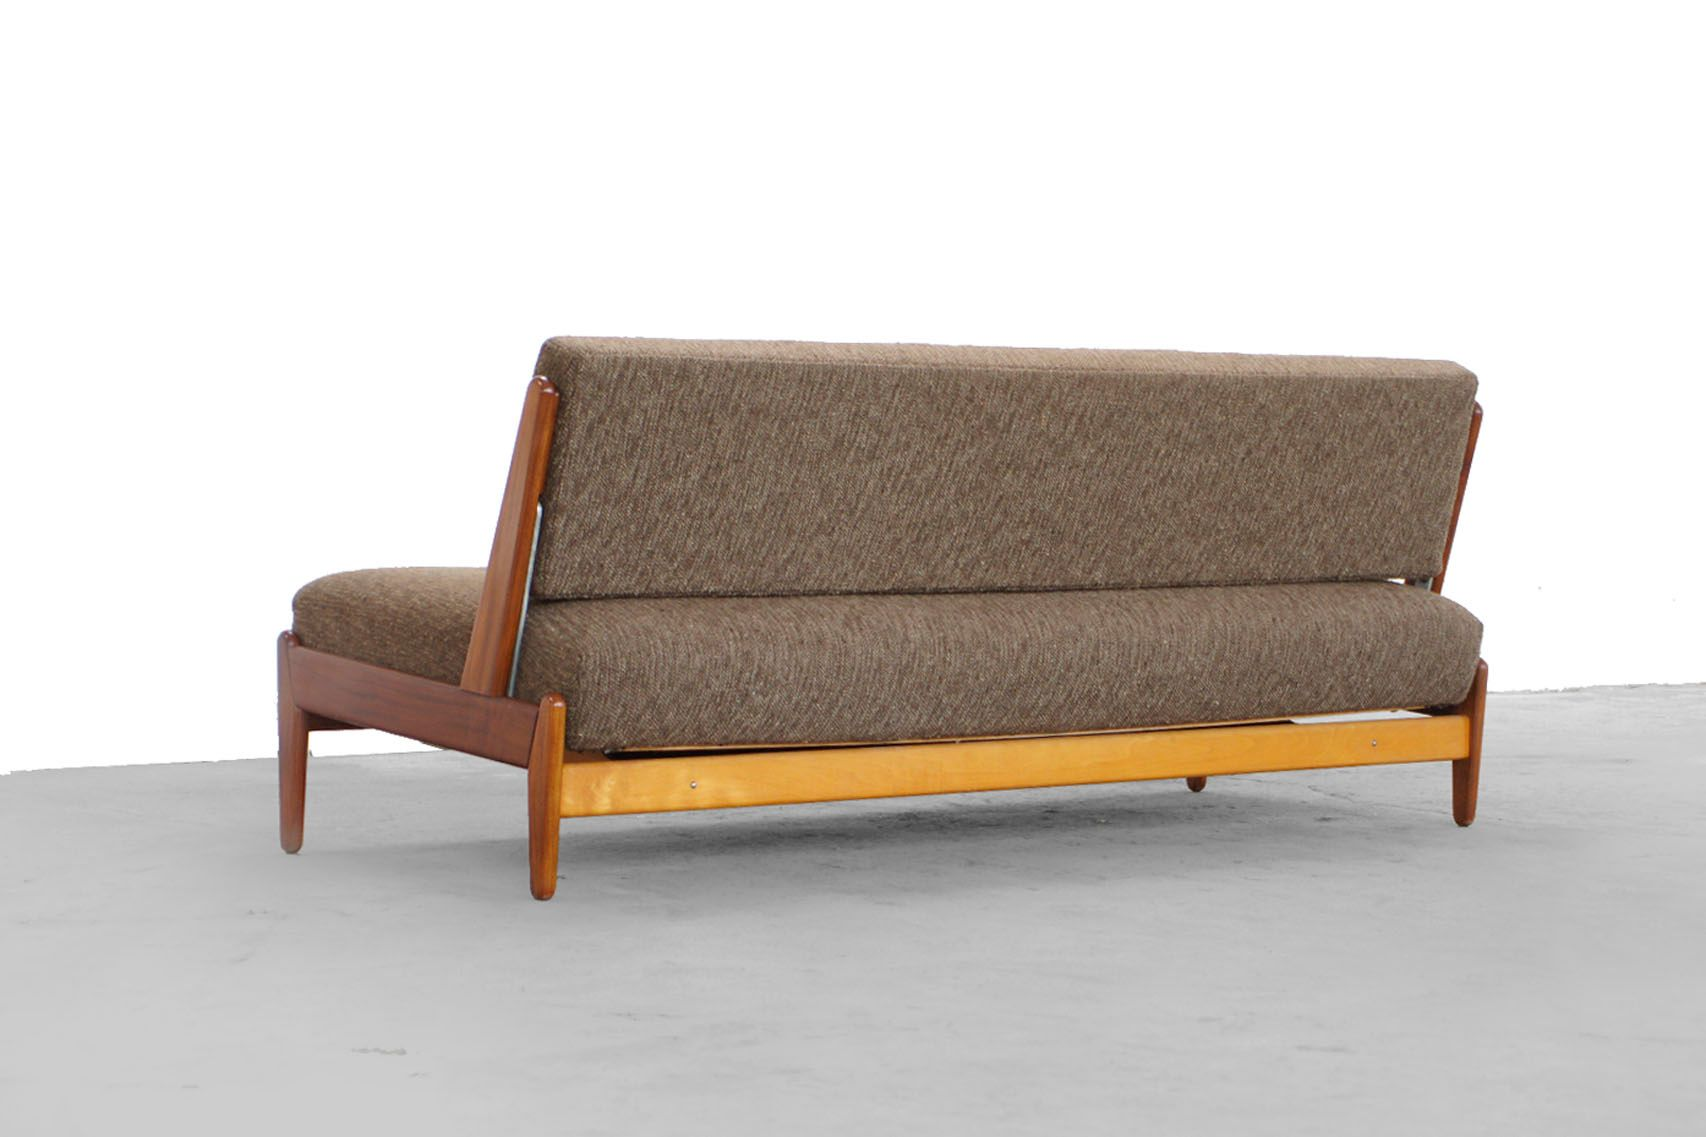 teak sofa by hans olsen f r frem rojle 1955 for sale at. Black Bedroom Furniture Sets. Home Design Ideas